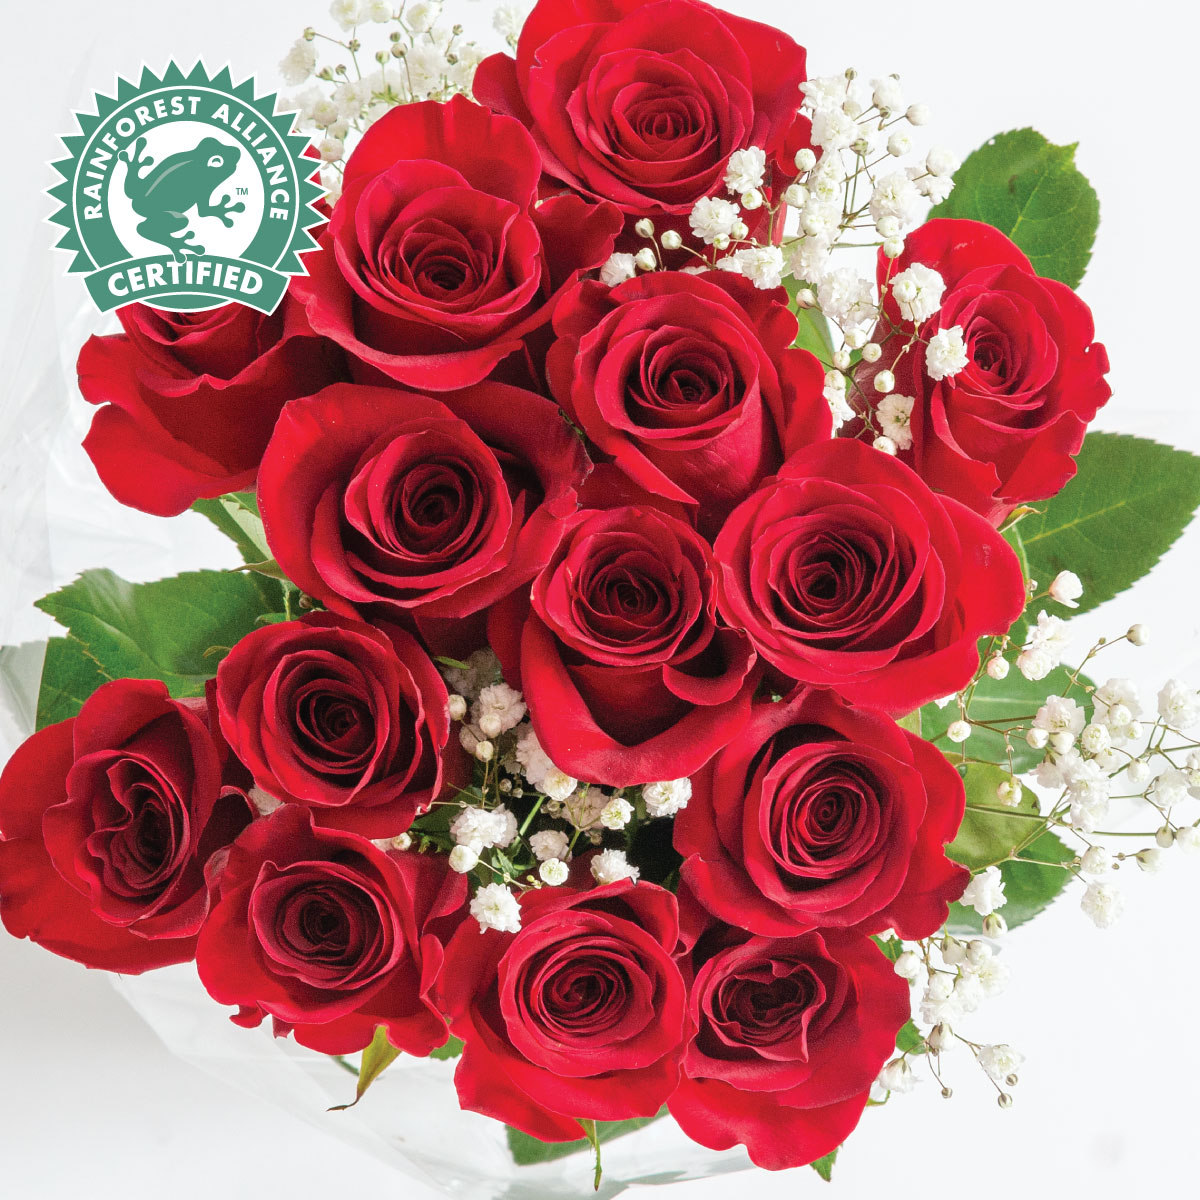 NEW! Premium 14-Stem Rose Bouquet